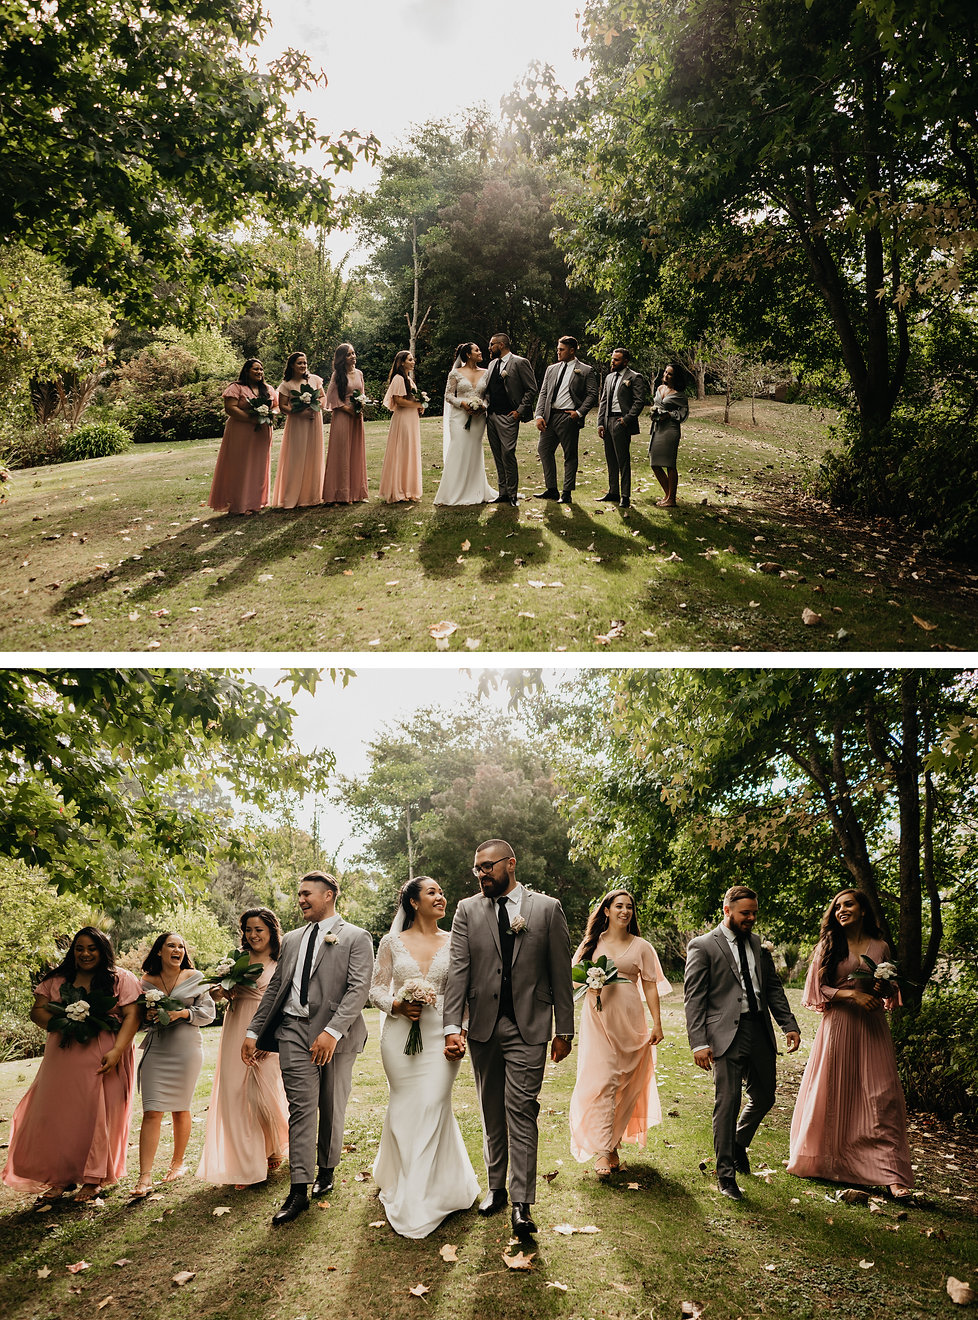 bridal group photos at bridgewater estate in Auckland New Zealand, captured by wanderlusting lovers